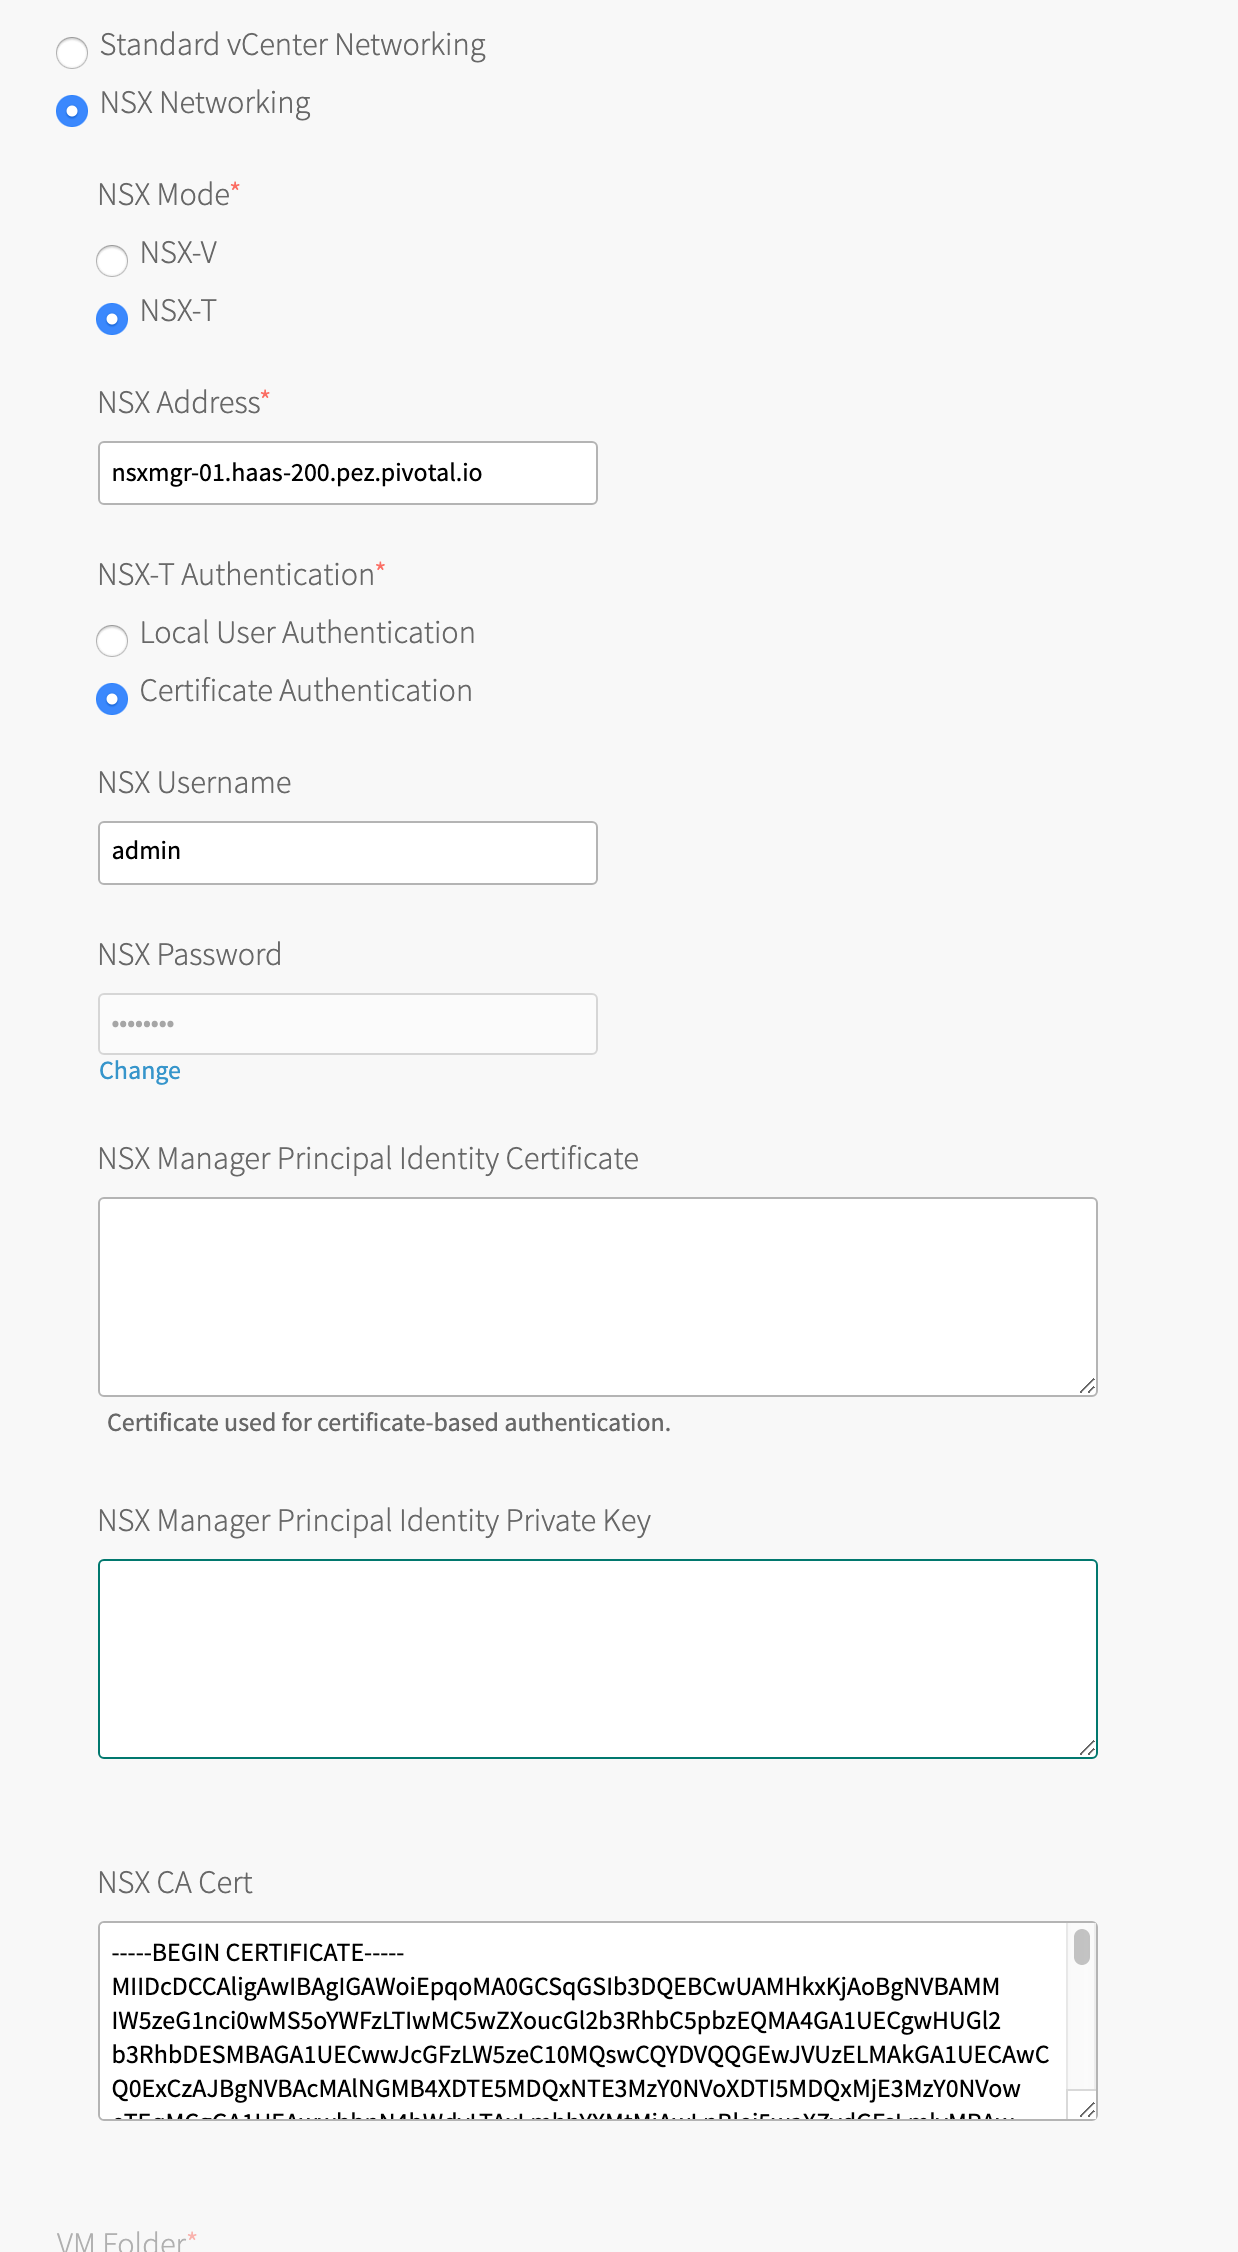 At top are two radio buttons: labeled 'Standard vCenter Networking' and unselected, and labeled 'NSX Networking' and selected. Indented below are two radio buttons grouped under 'NSX Mode': 'NSX-V' and 'NSX-T' (selected). Below is text field labeled 'NSX Address' with 'nsxmgr-01.haas-200.pez.pivotal.io' filled in.  Below are two radio buttons grouped under 'NSX-T Authentication': 'Local User Authentication' and 'Certificate Authentication' (selected). Below are two text fields: 'NSX Username' with 'admin' filled in, and 'NSX Password' with hidden text. Below are two multiline text boxes: labeled 'NSX Manager Principal Identity Certificate' and 'NSX Manager Principal Identity Private Key'. Below and with extra space above is a multiline text box labeled 'NSX CA Cert' with an RSA certificate pasted in.